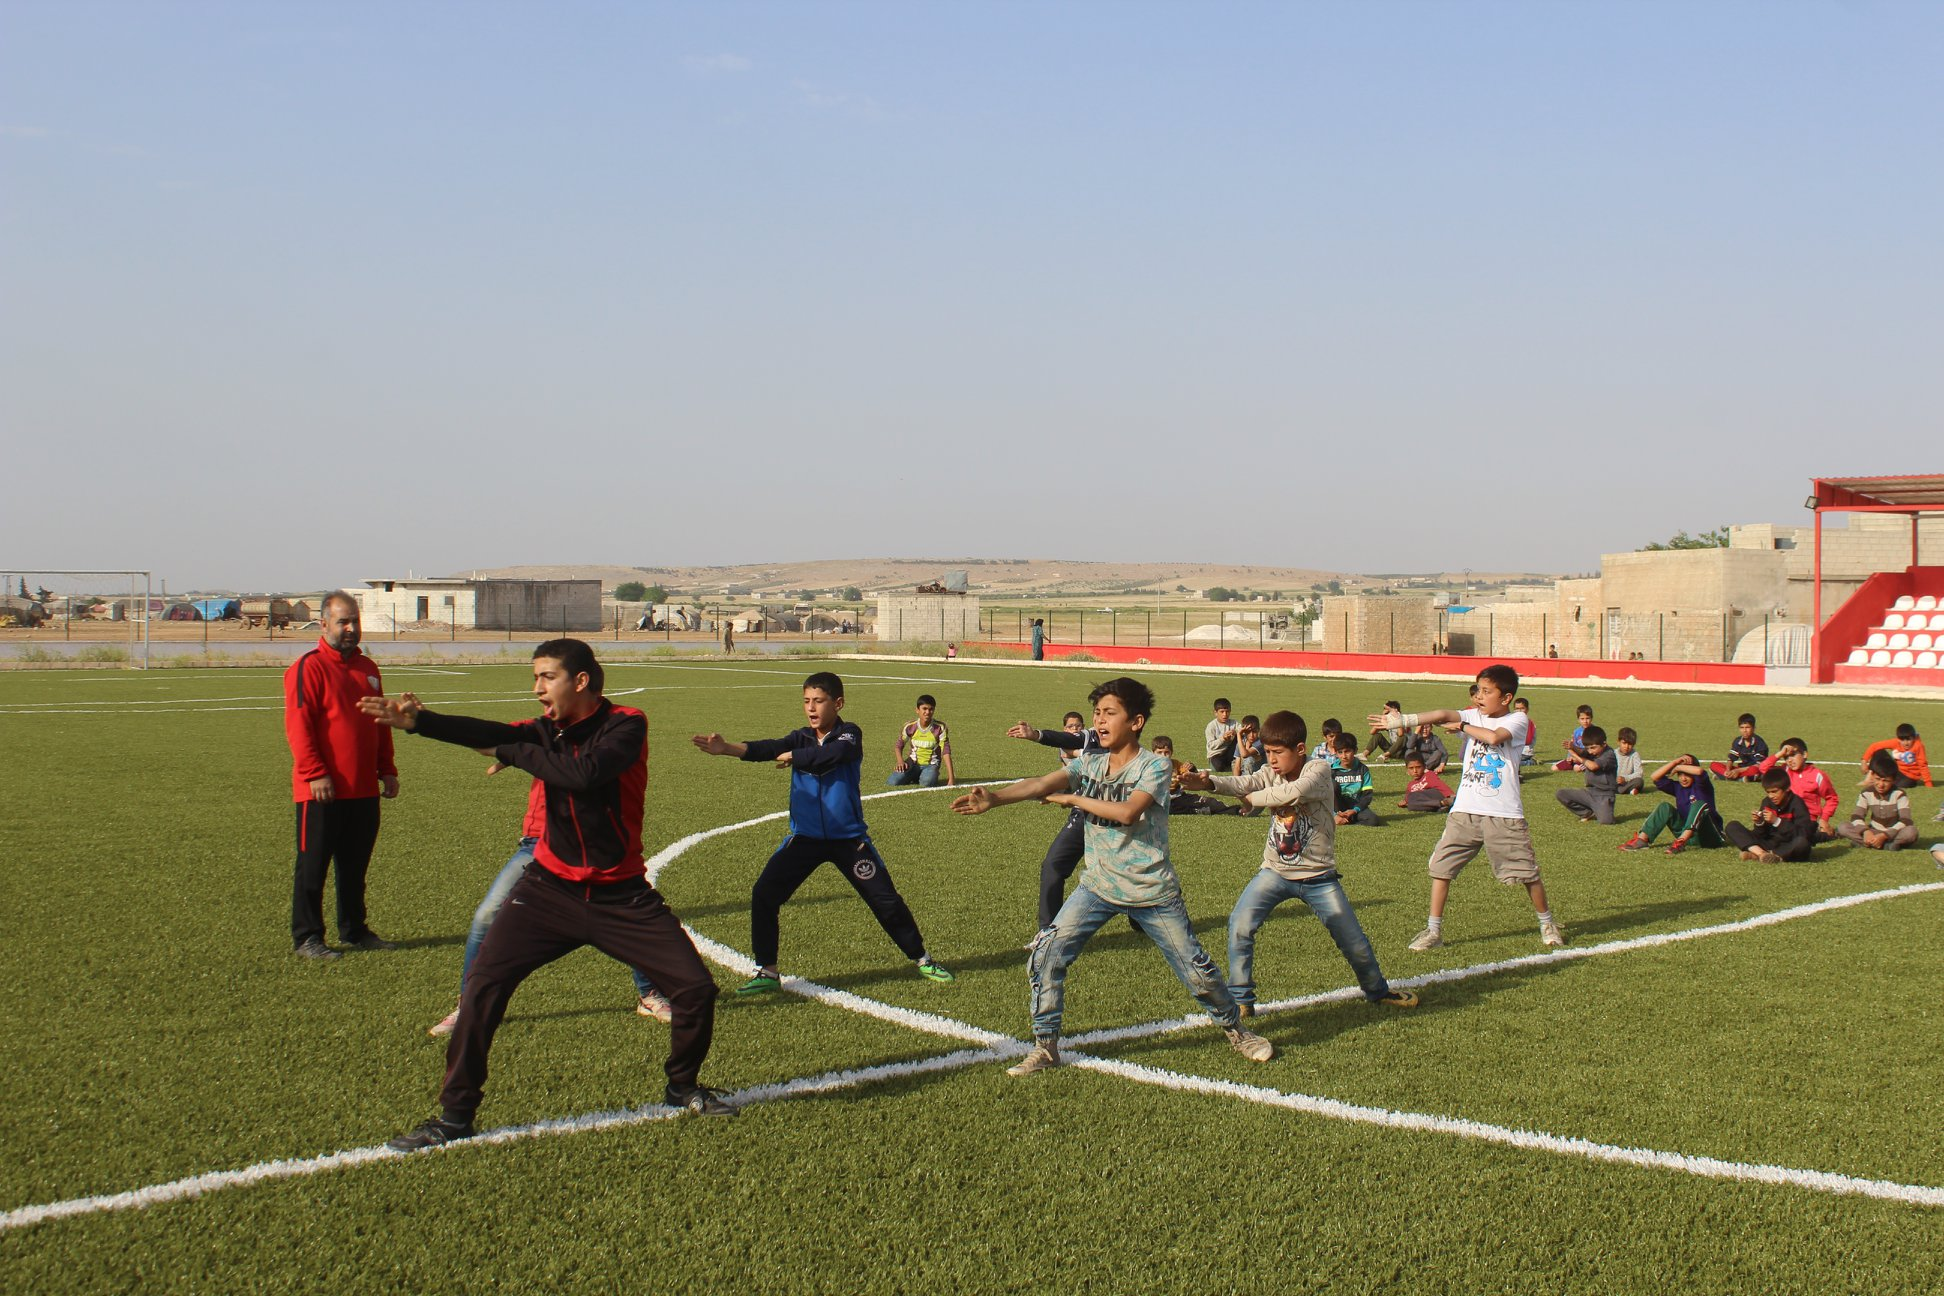 Karate and martial arts trainings for children at Qabasin Stadium - May 19, 2019 (Qabasin Local Council)